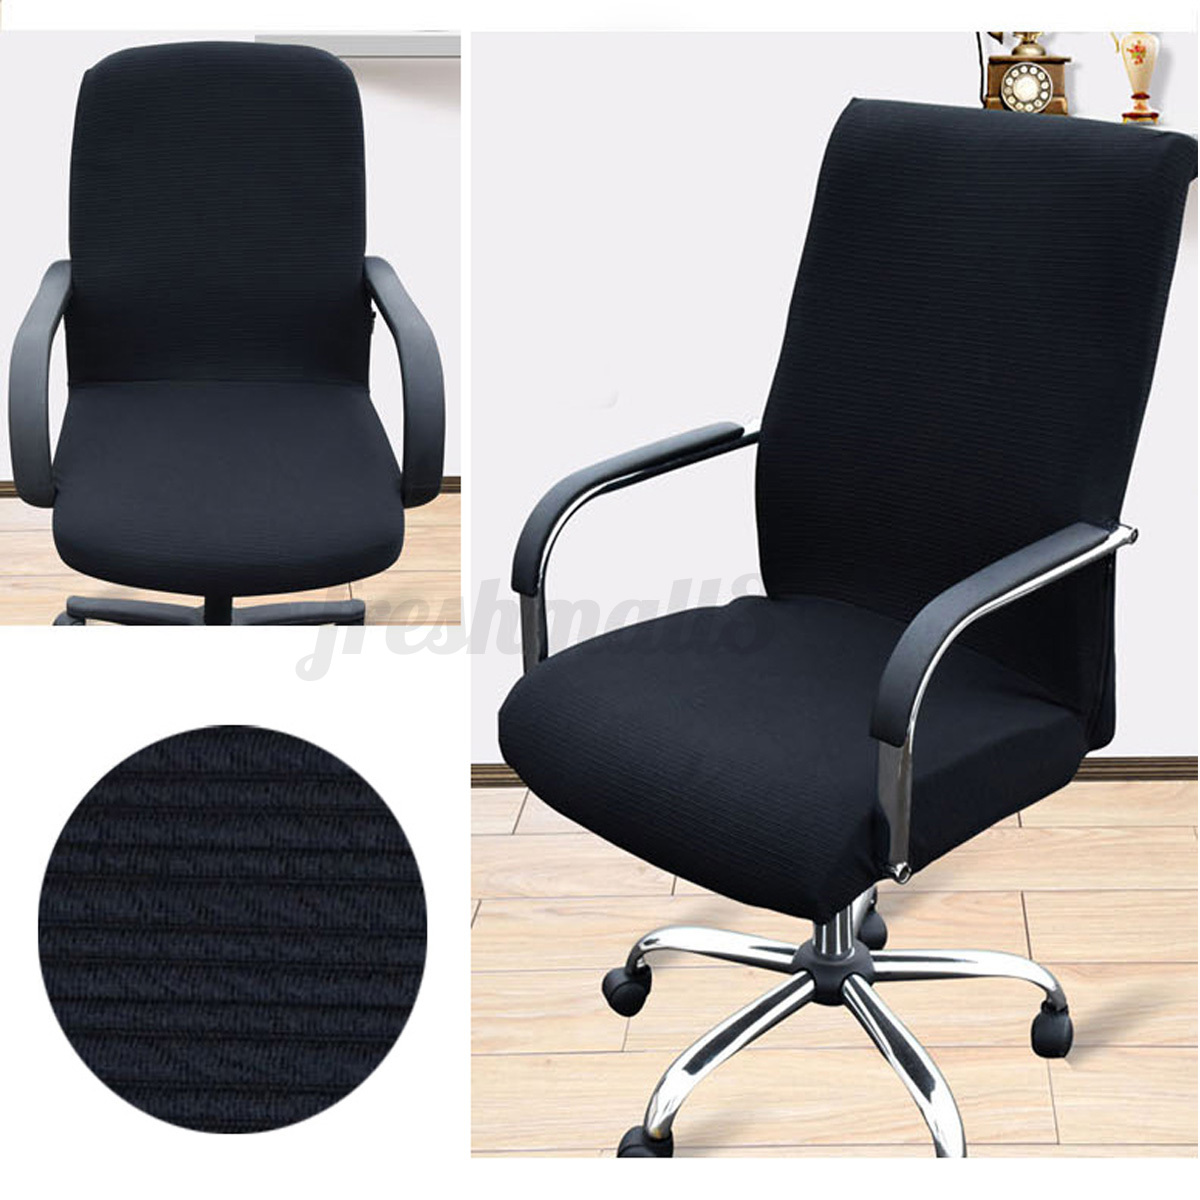 stretch dining chair covers uk blue bay rum recipes slip cover office armchair seat protective